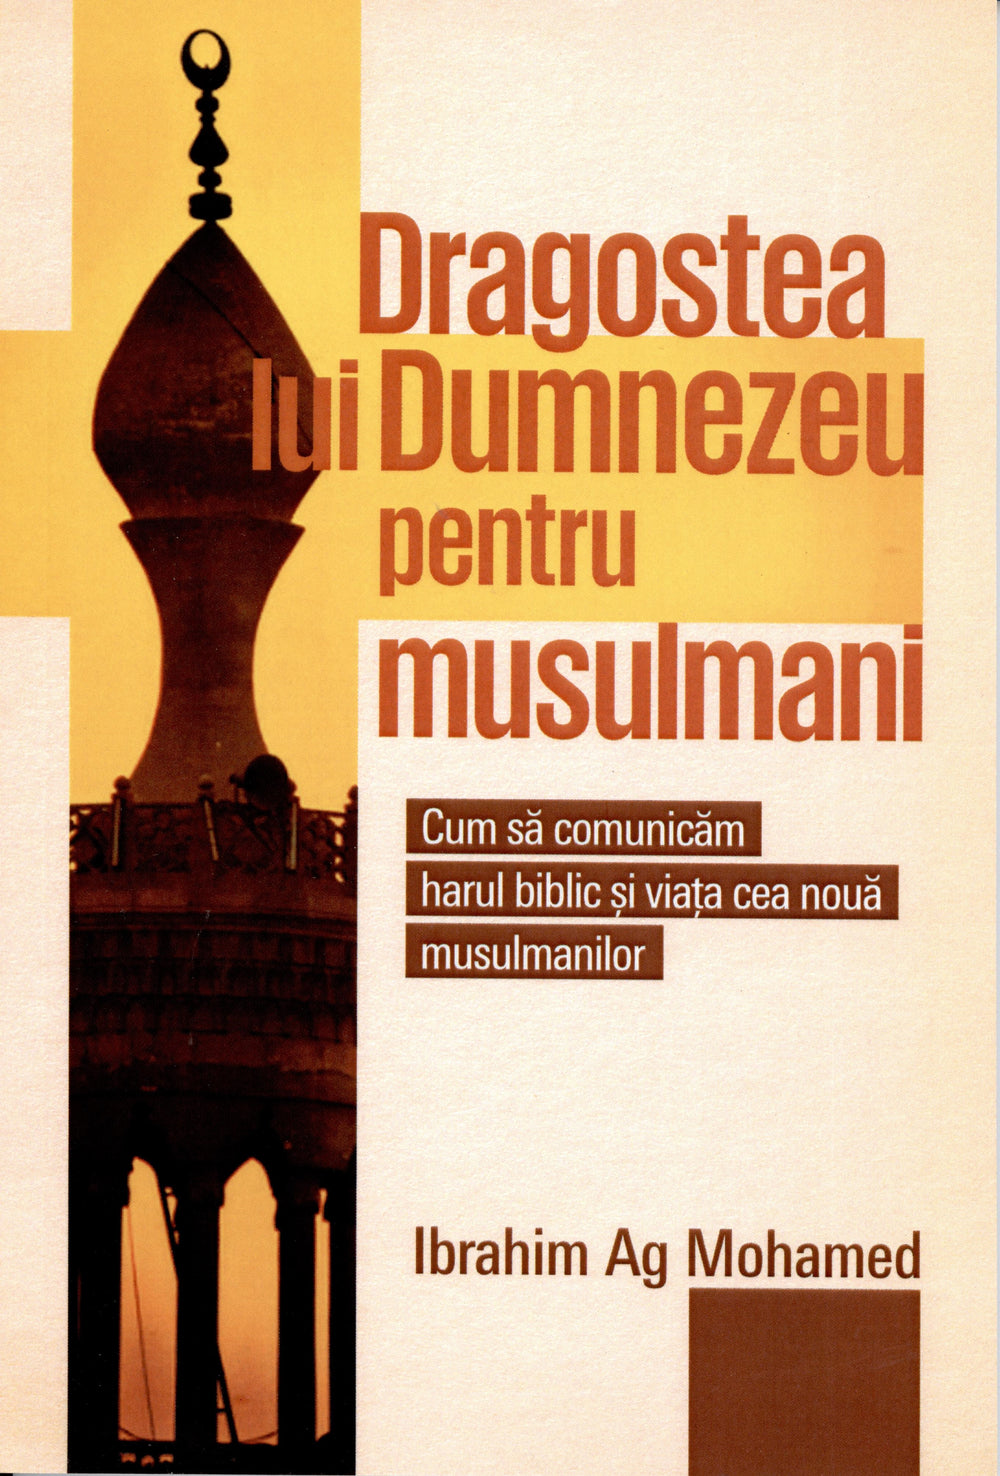 Romanian God's Love for Muslims